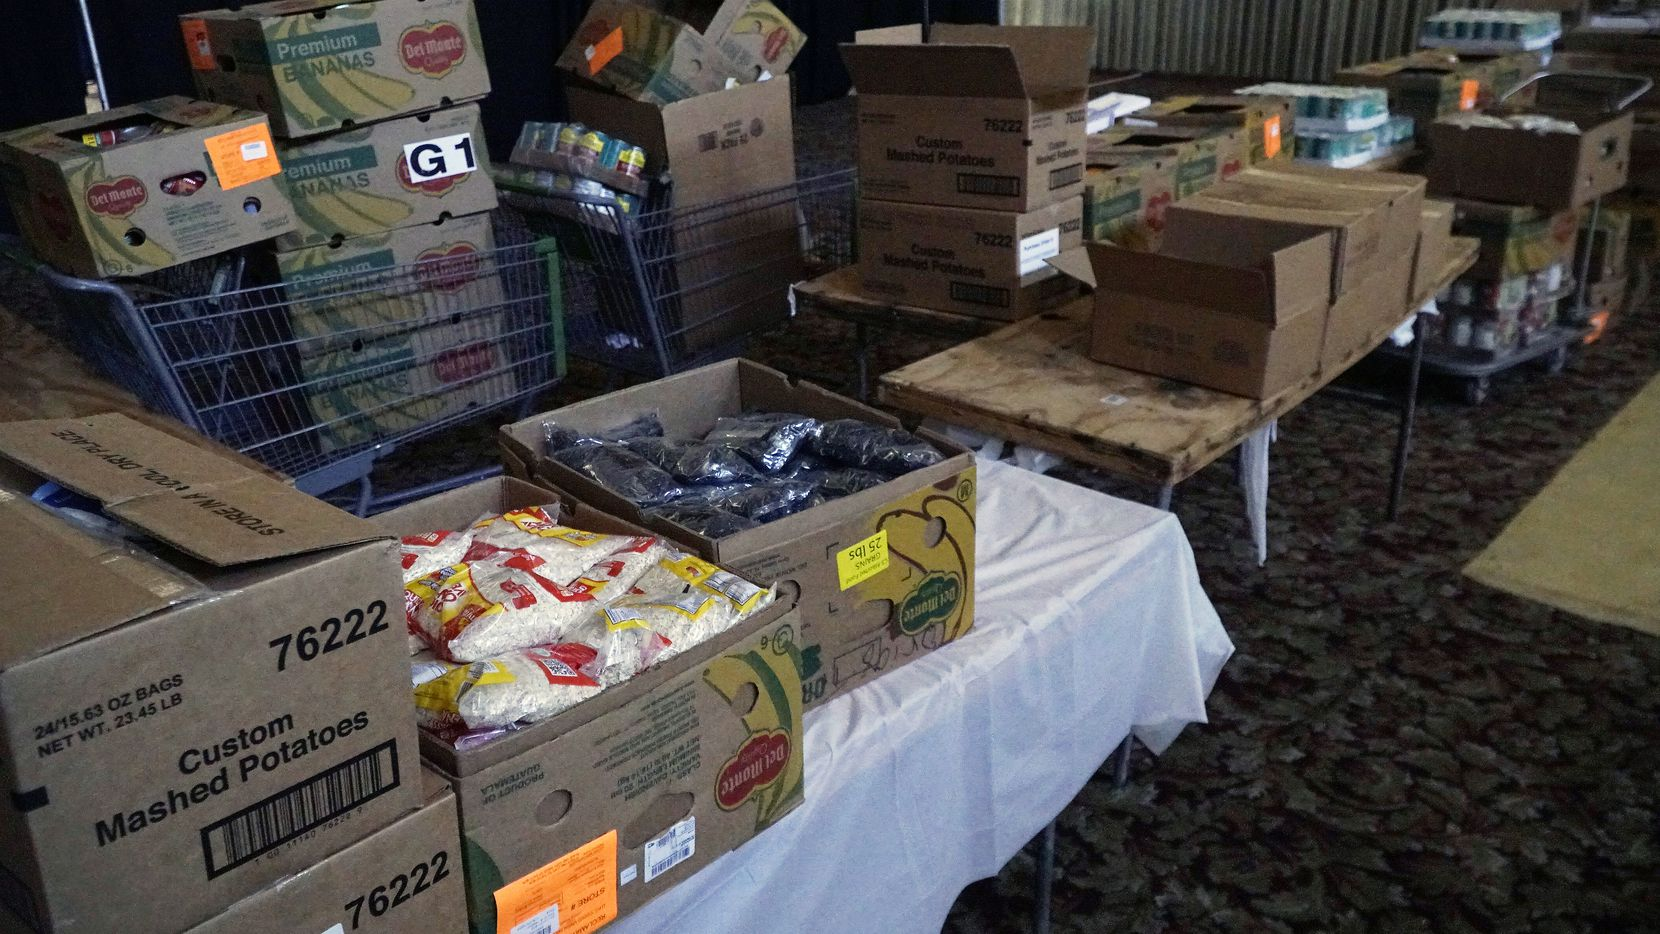 The food pantry survived the damage from the storm at Friendship West ministry center on Kiest Boulevard in Dallas, Texas on Saturday, February 20, 2021.